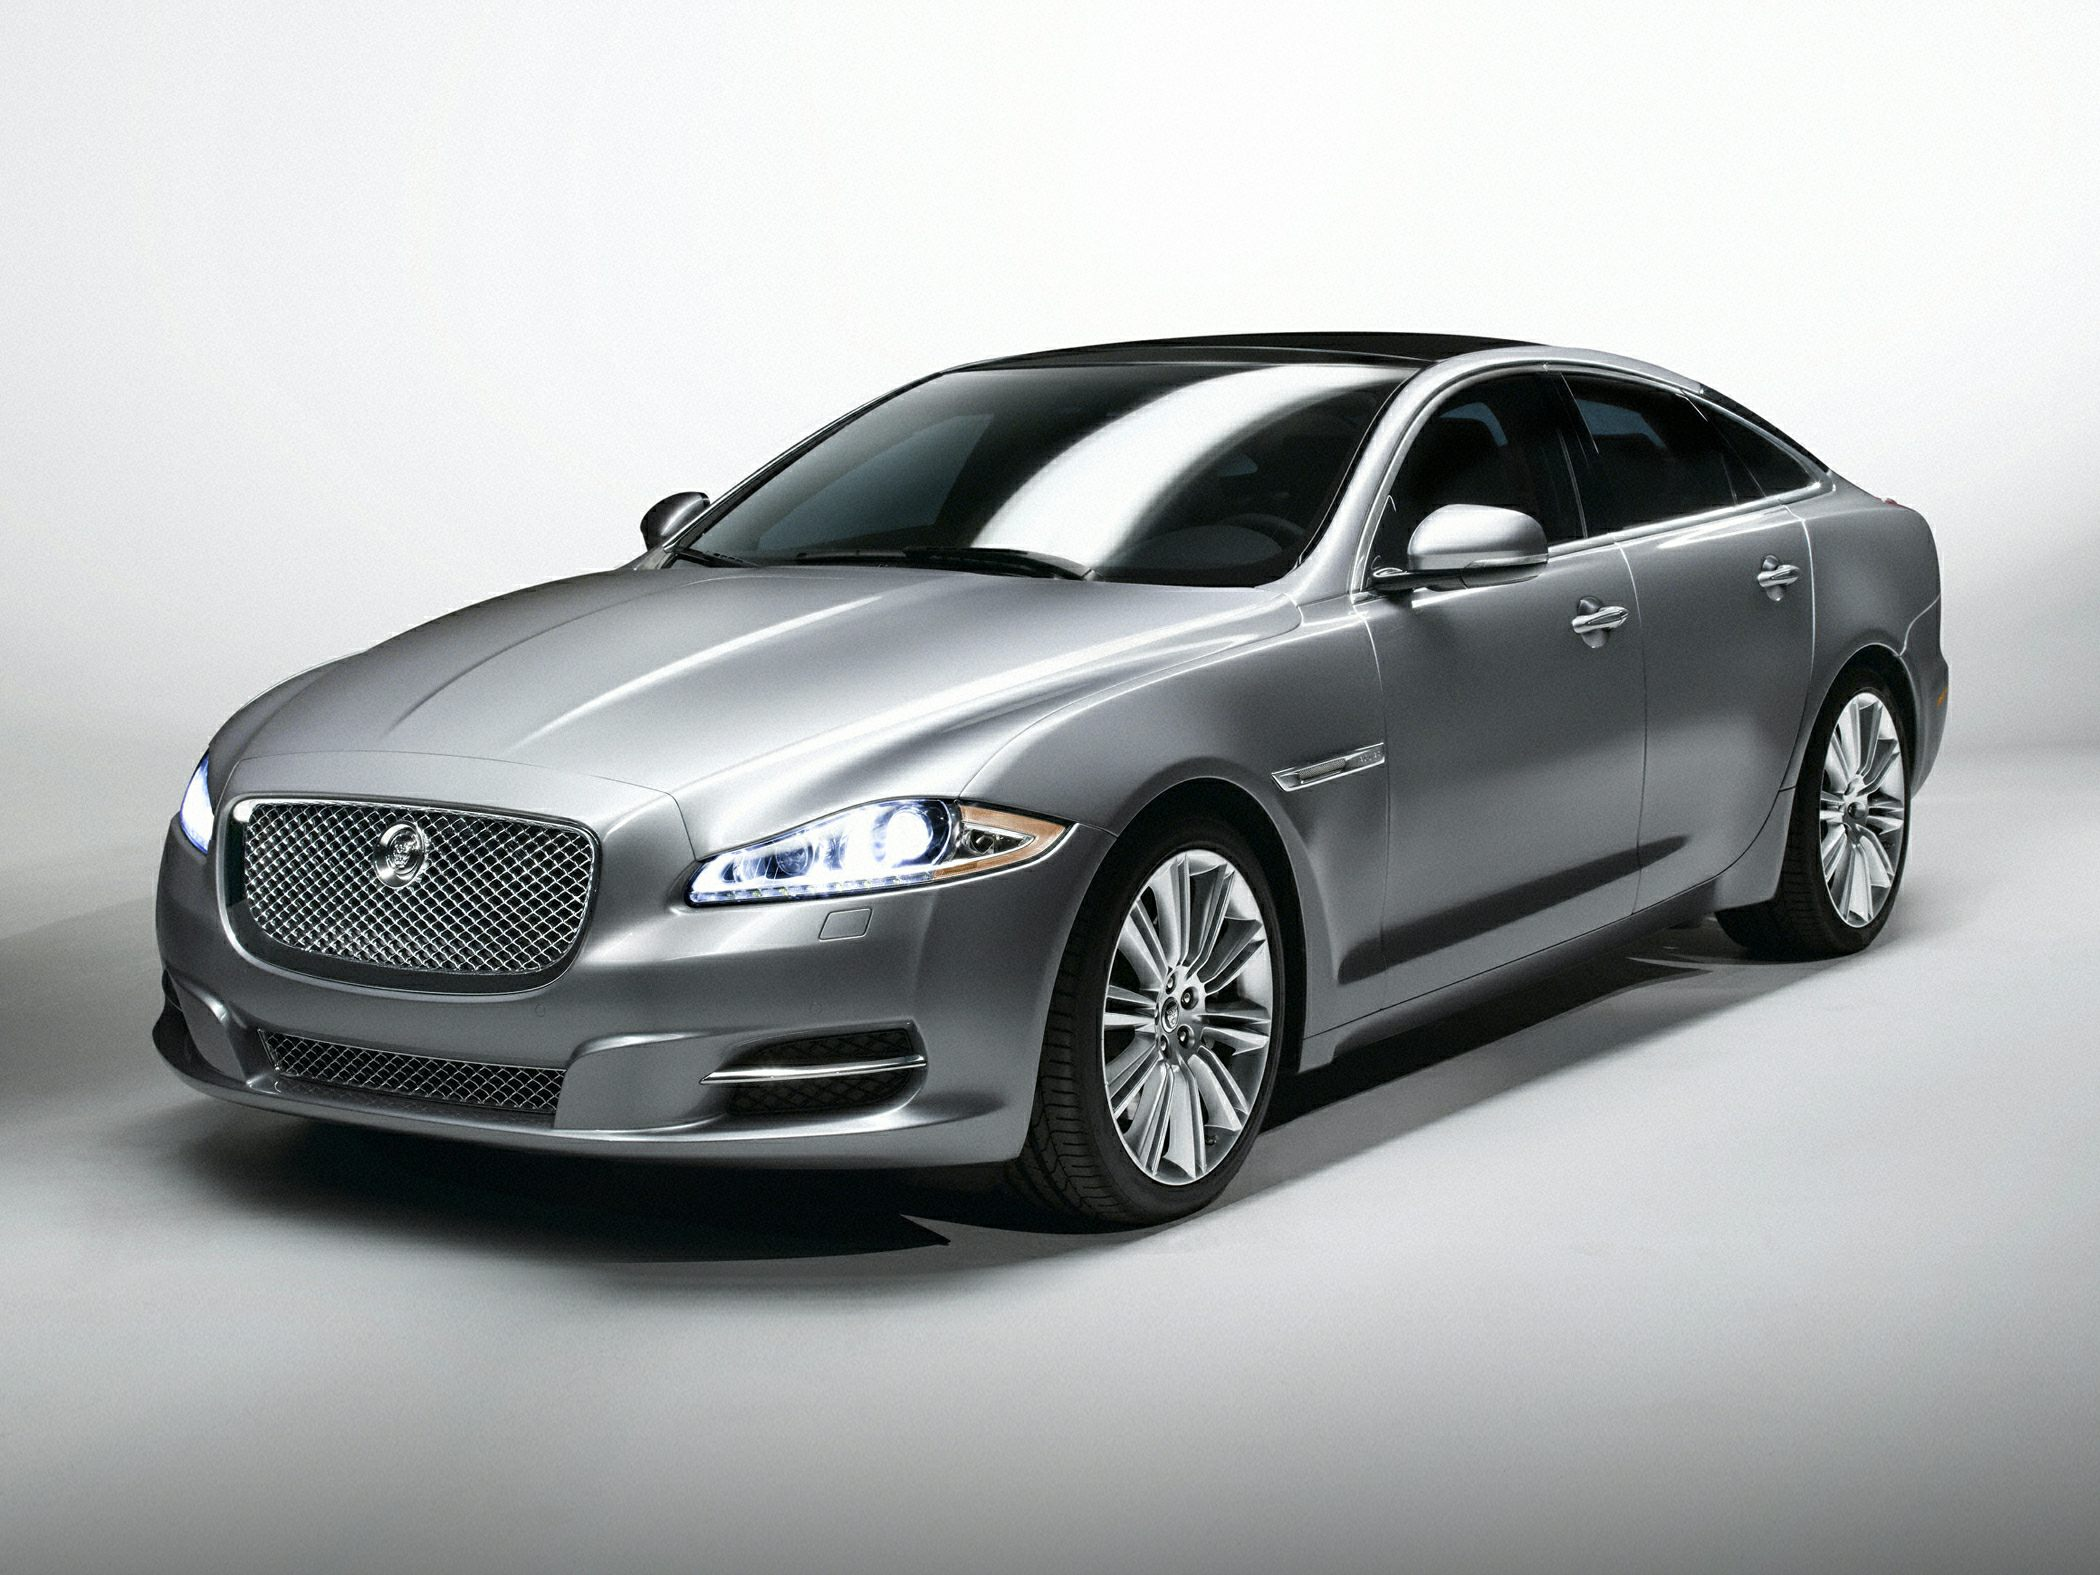 px jaguar image backgrounds cool and wallpaper cars download x wallpapers xjl original xj